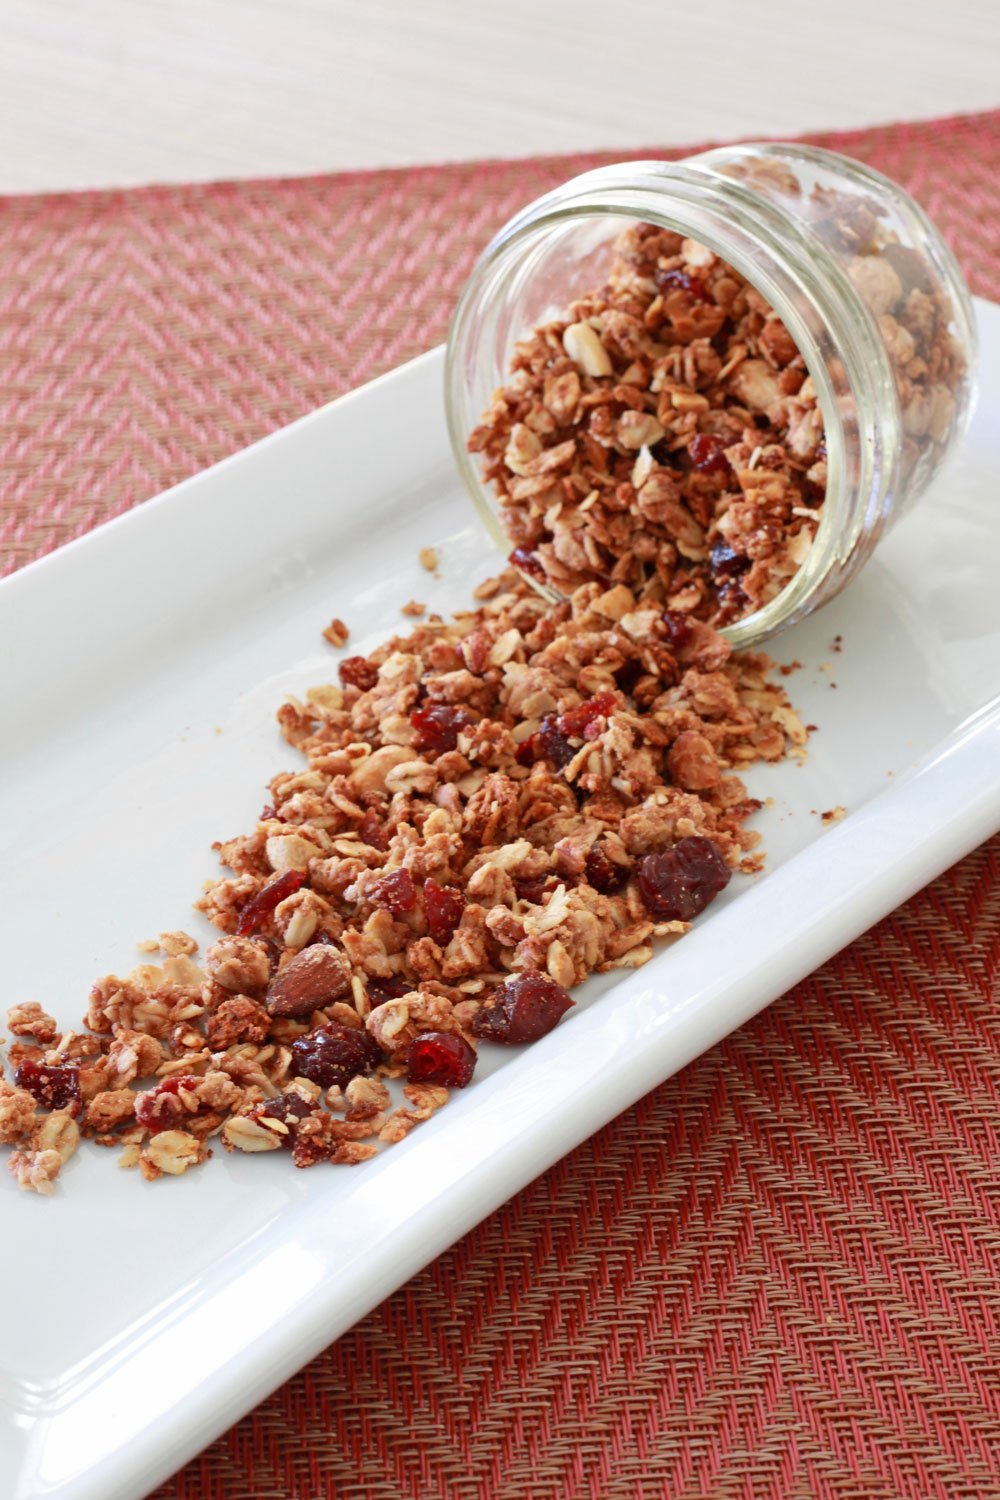 Peanut Butter & Jelly Granola | Recipe Runner